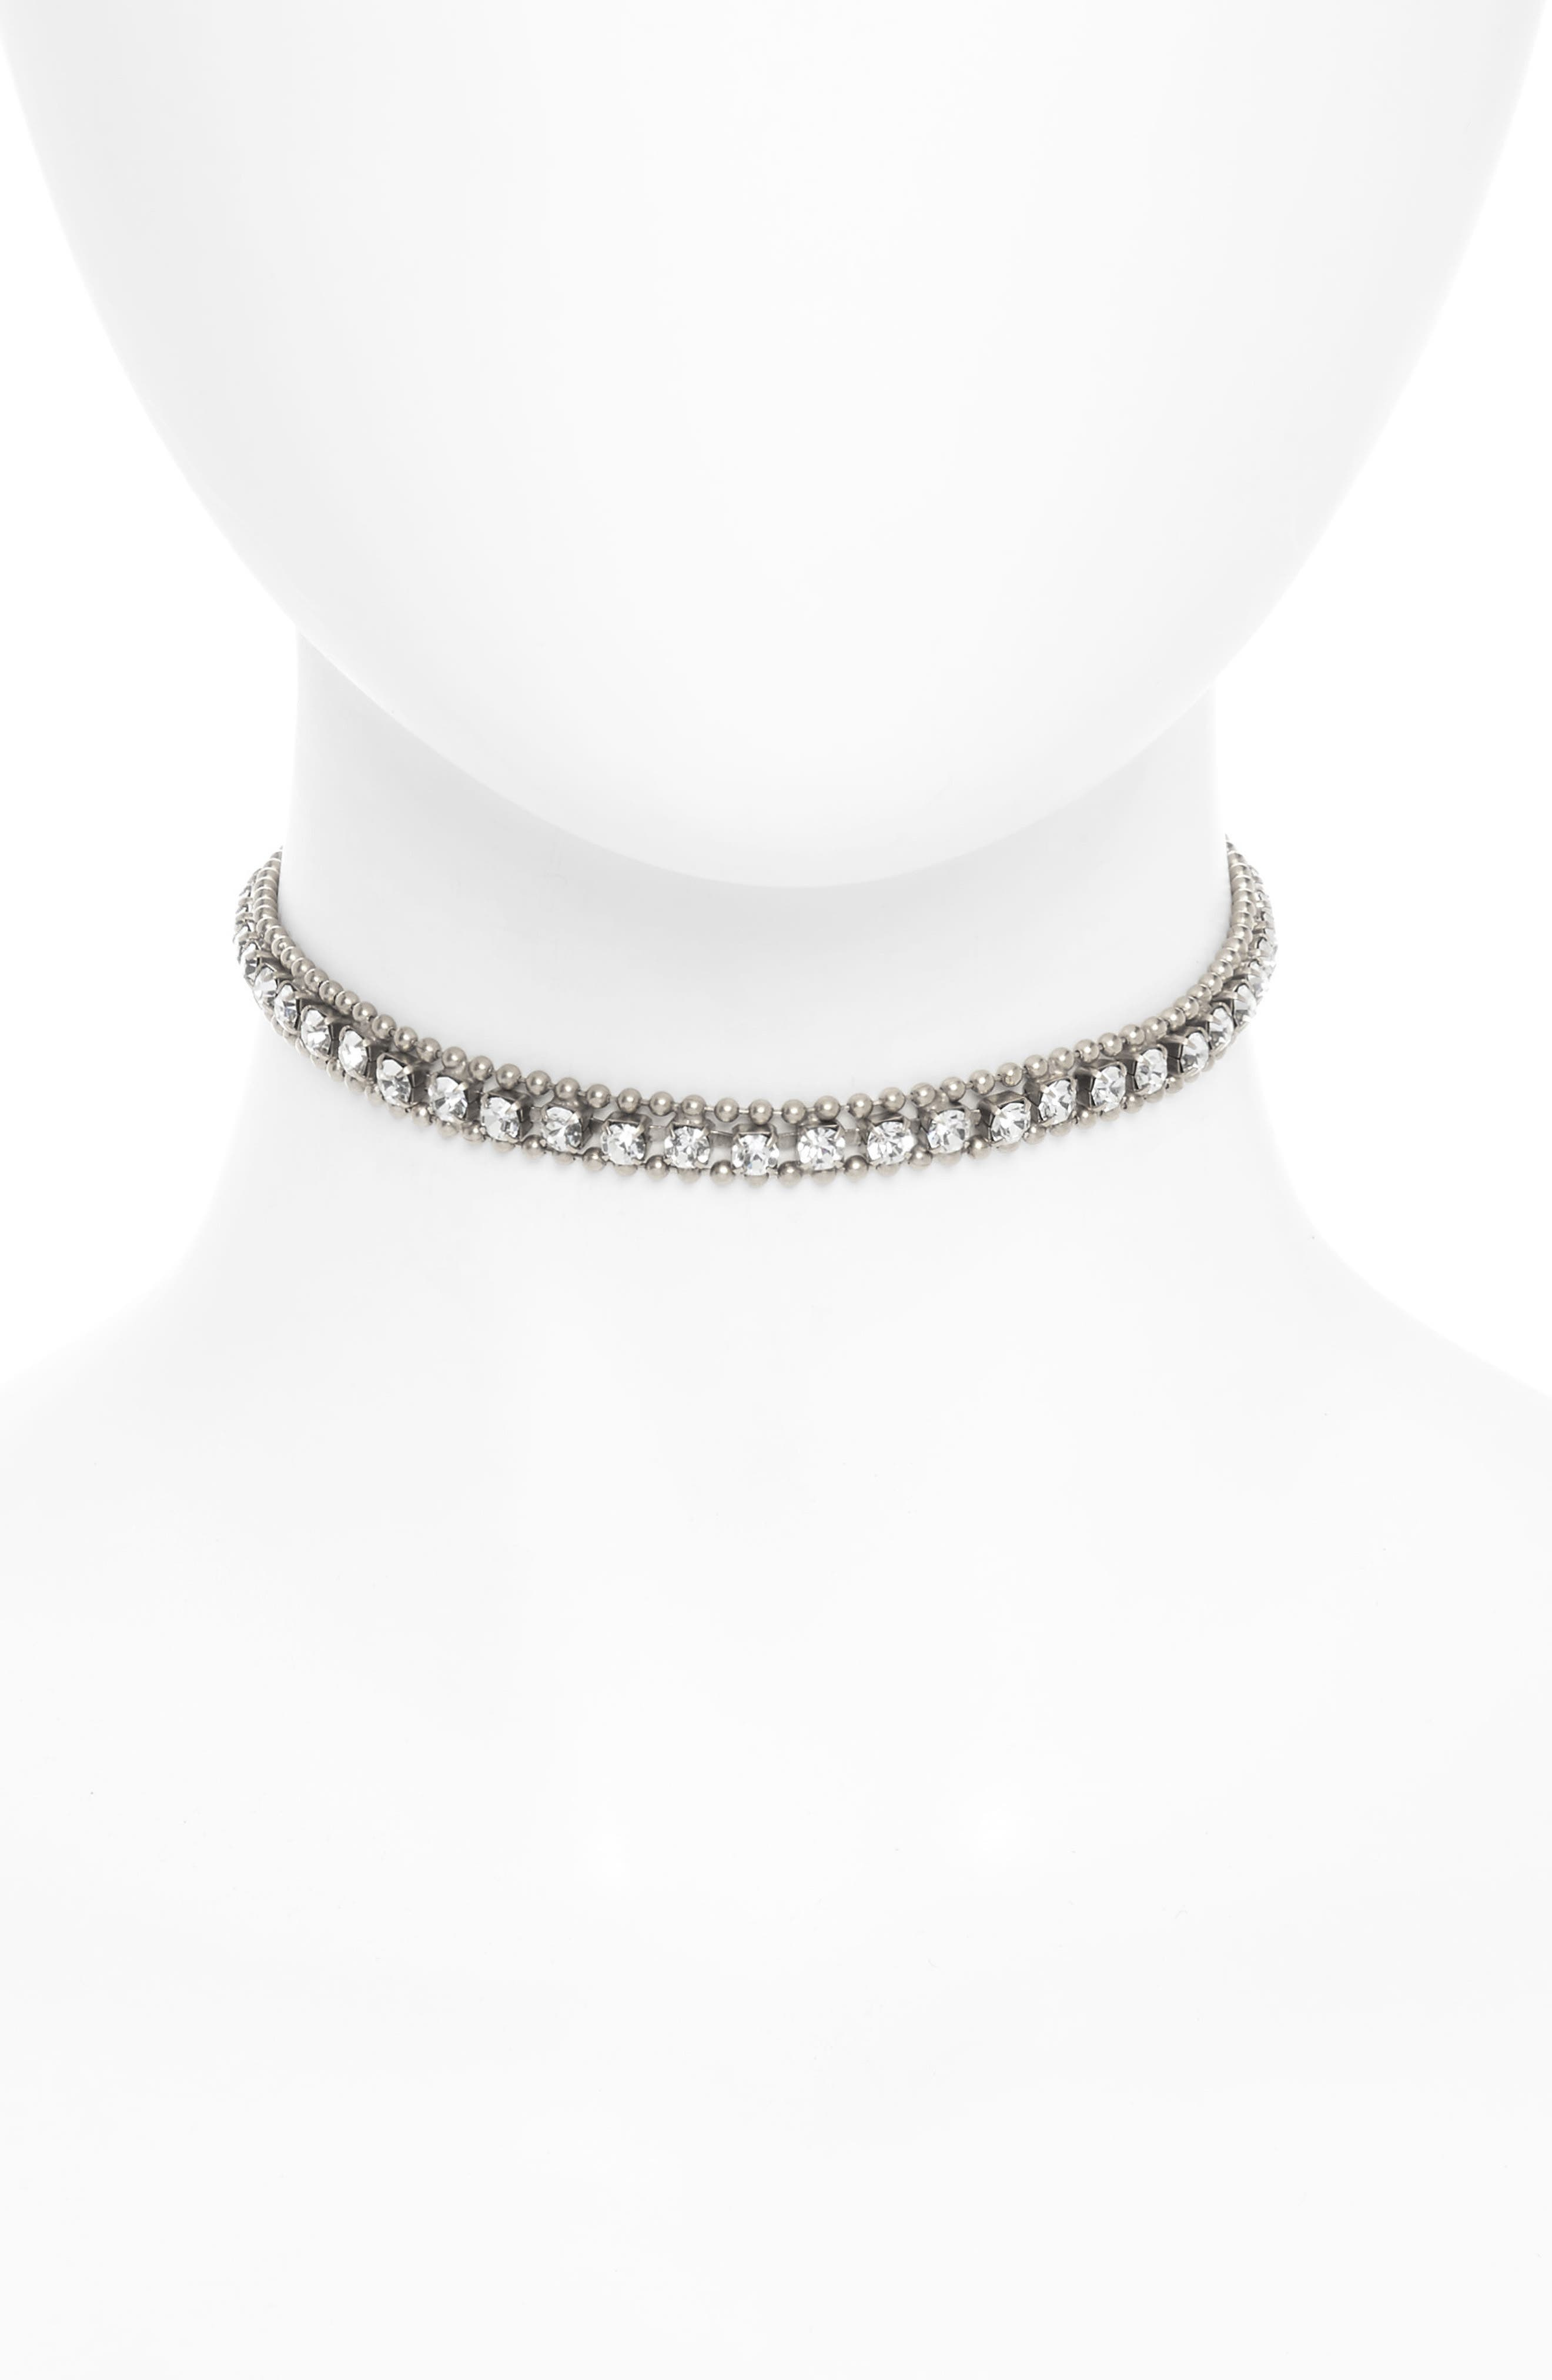 Alternate Image 1 Selected - Loren Hope Crystal Choker Necklace